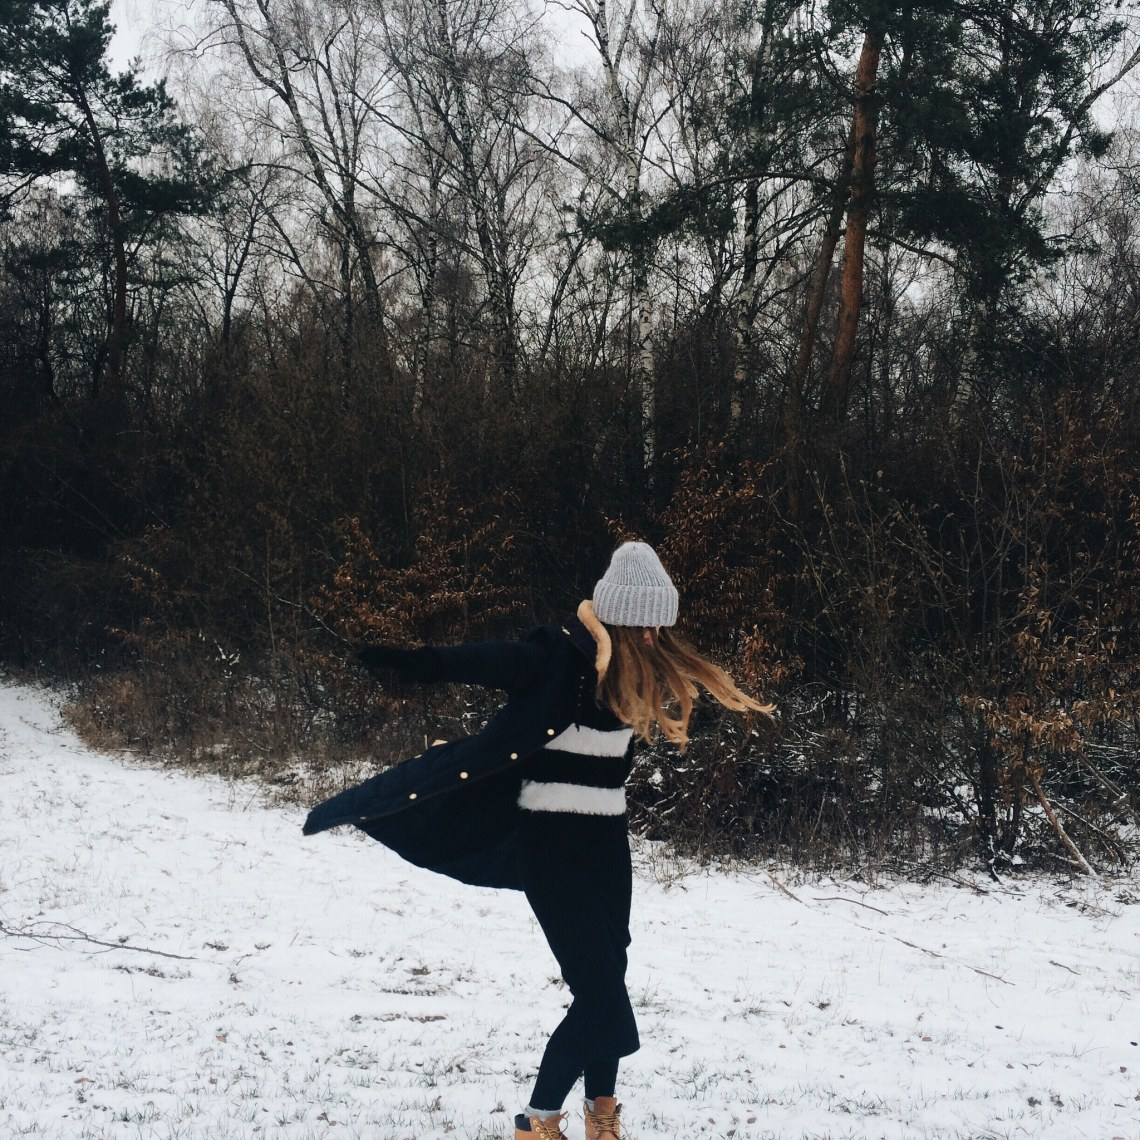 Frolicking in the snow, girl running down a snowy hill in winter